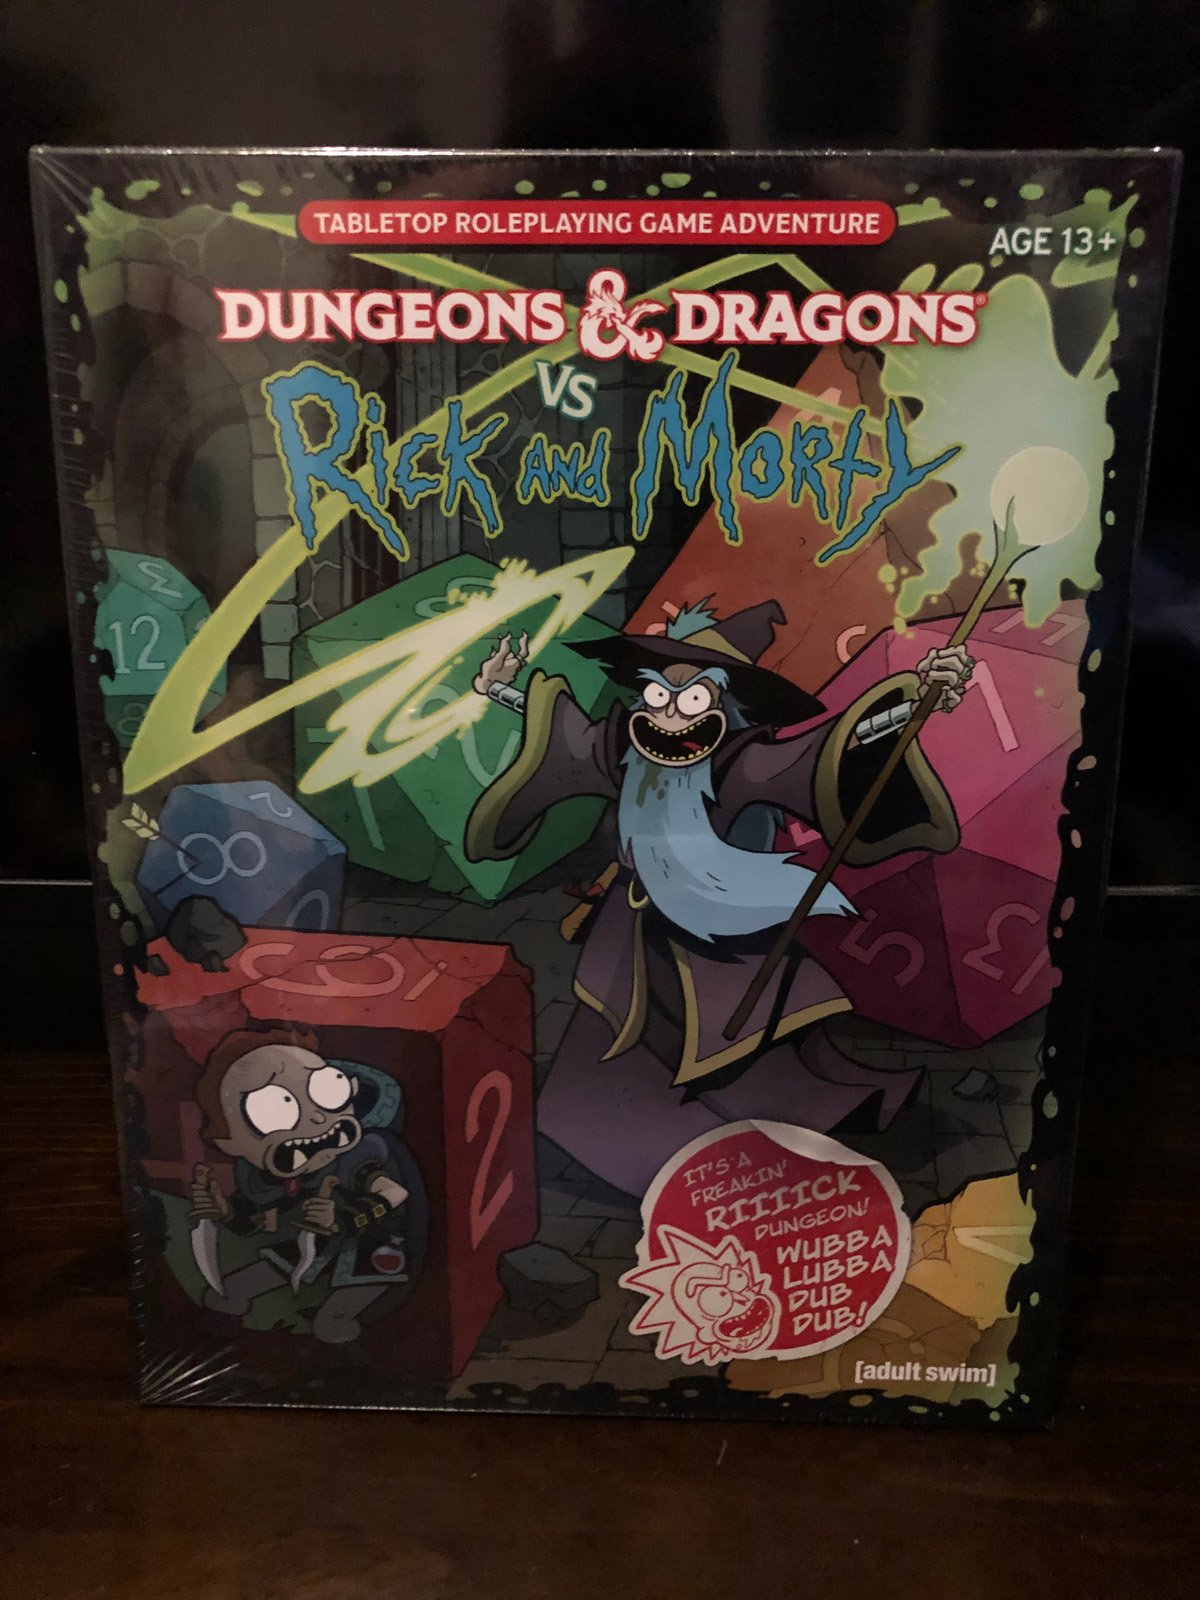 Dungeons & Dragons vs Rick and Morty